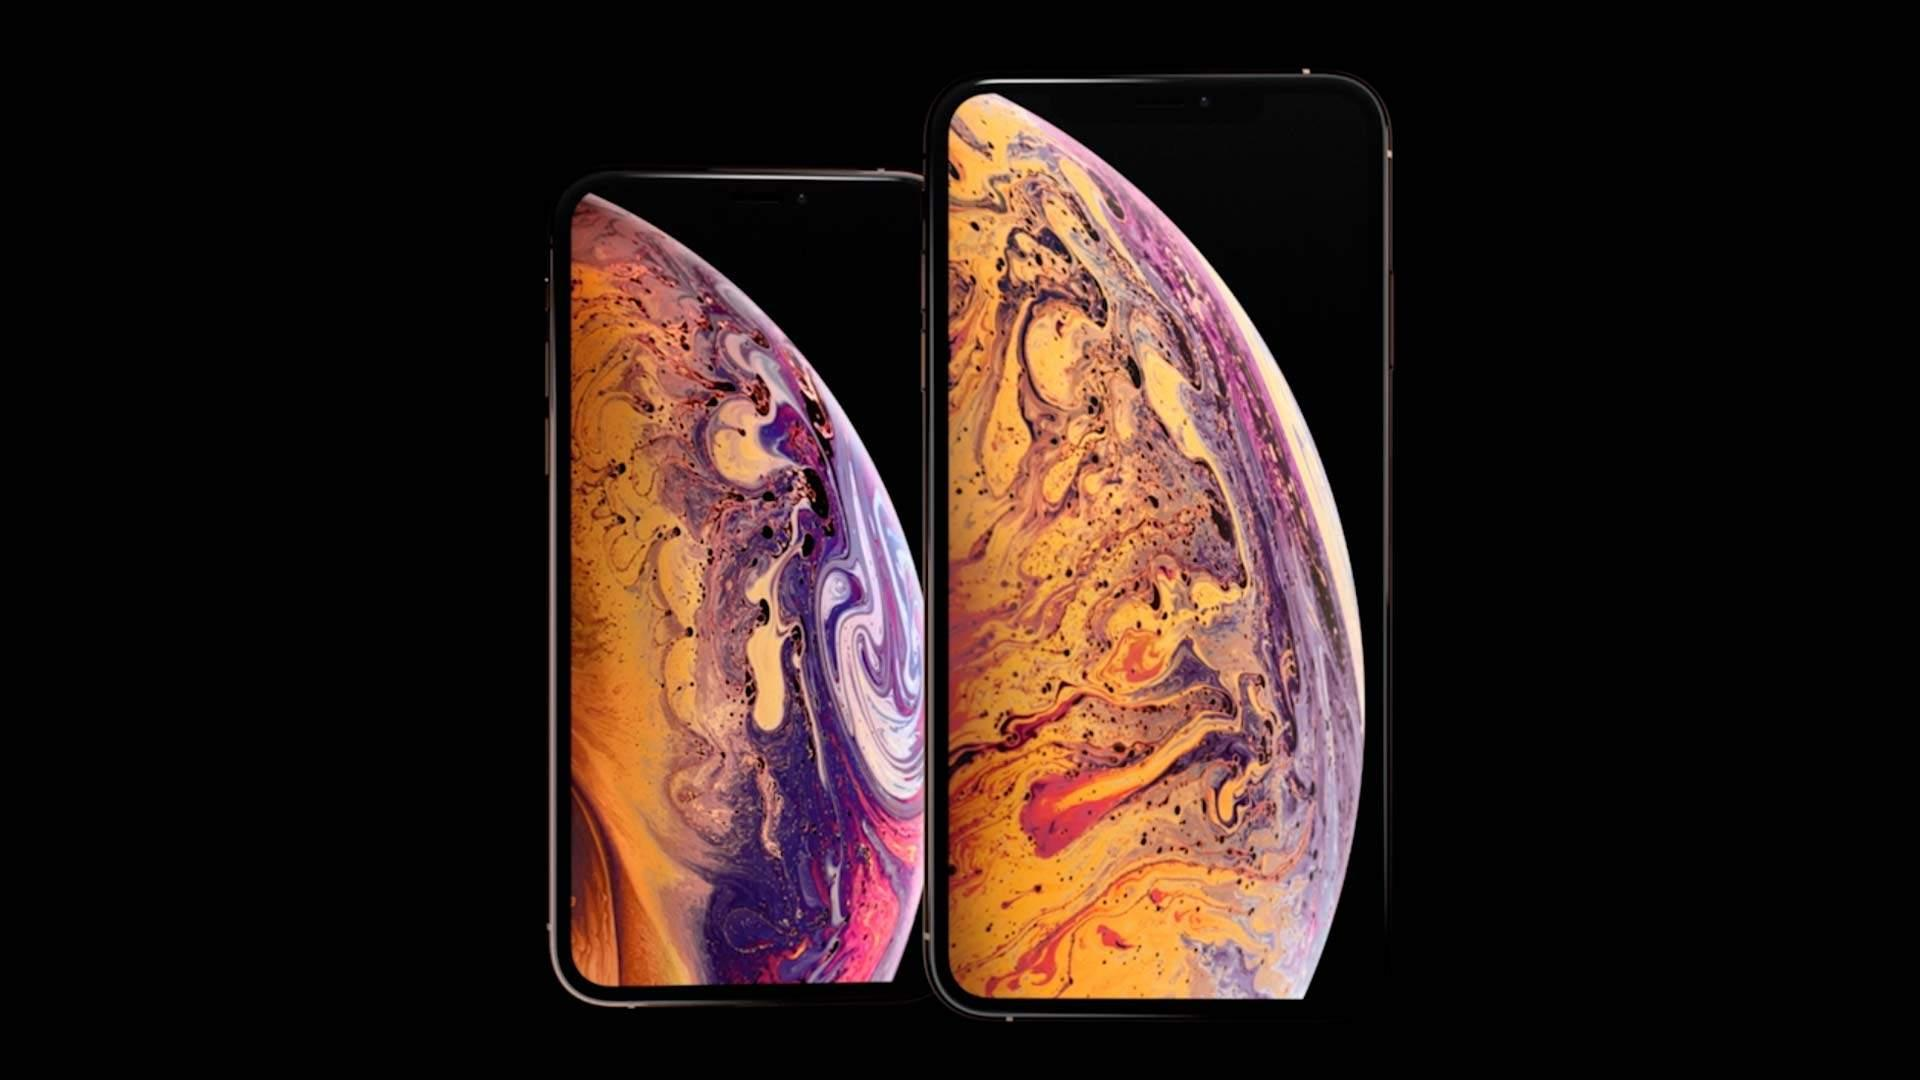 http://pre-party.com.ua/uploads/2018/Tanya/September/Apple_new-Products_SEP2018/001-iPhone-XS.jpg